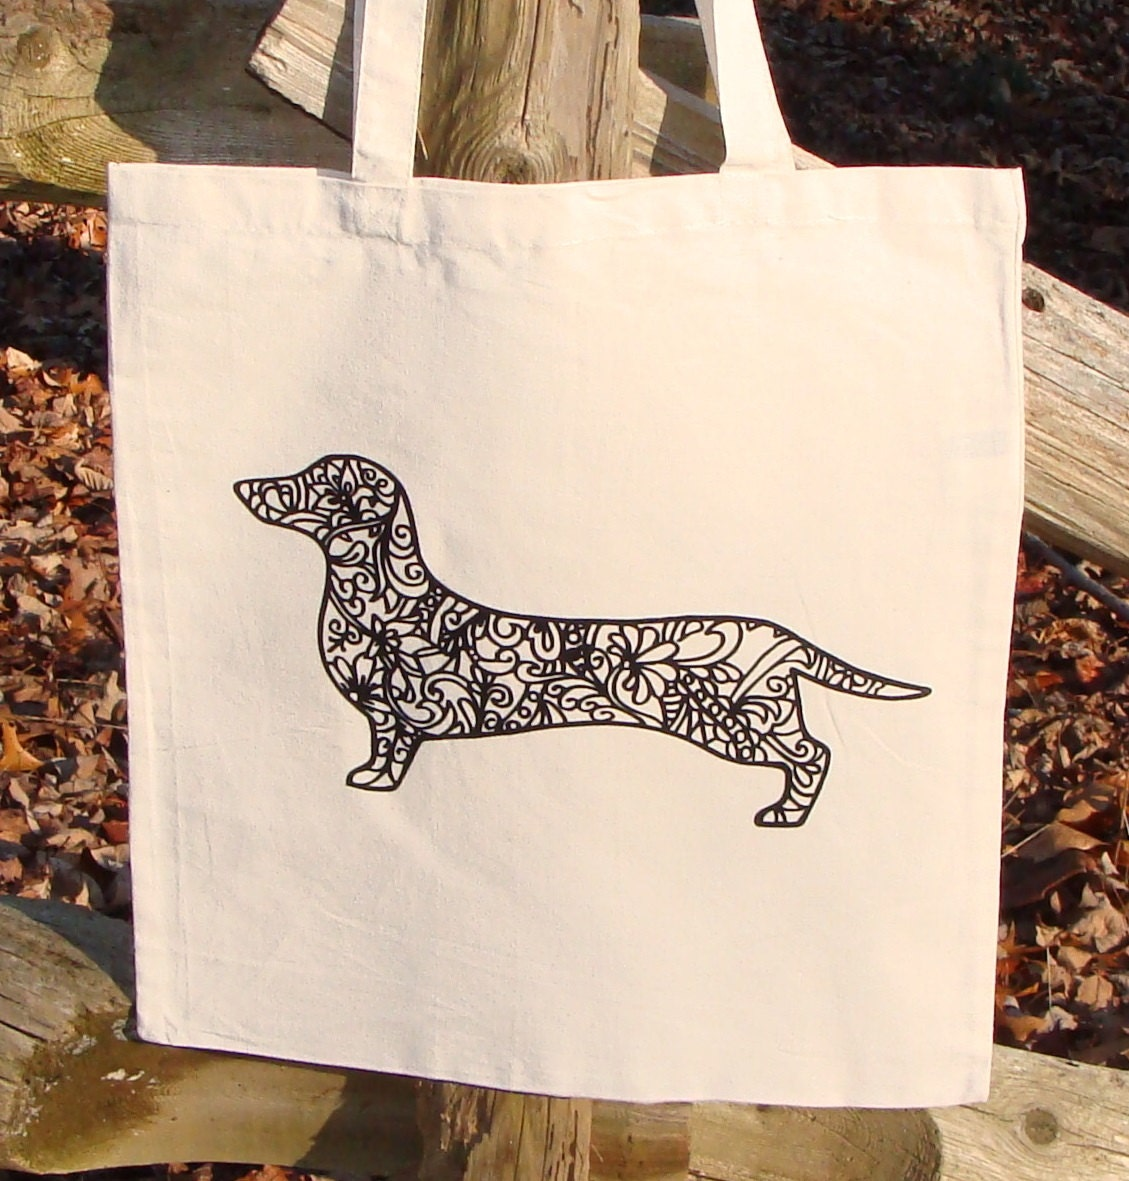 Dachshund Dog Tote Bag Market Bag Zendoodle Doxie Puppy Adult